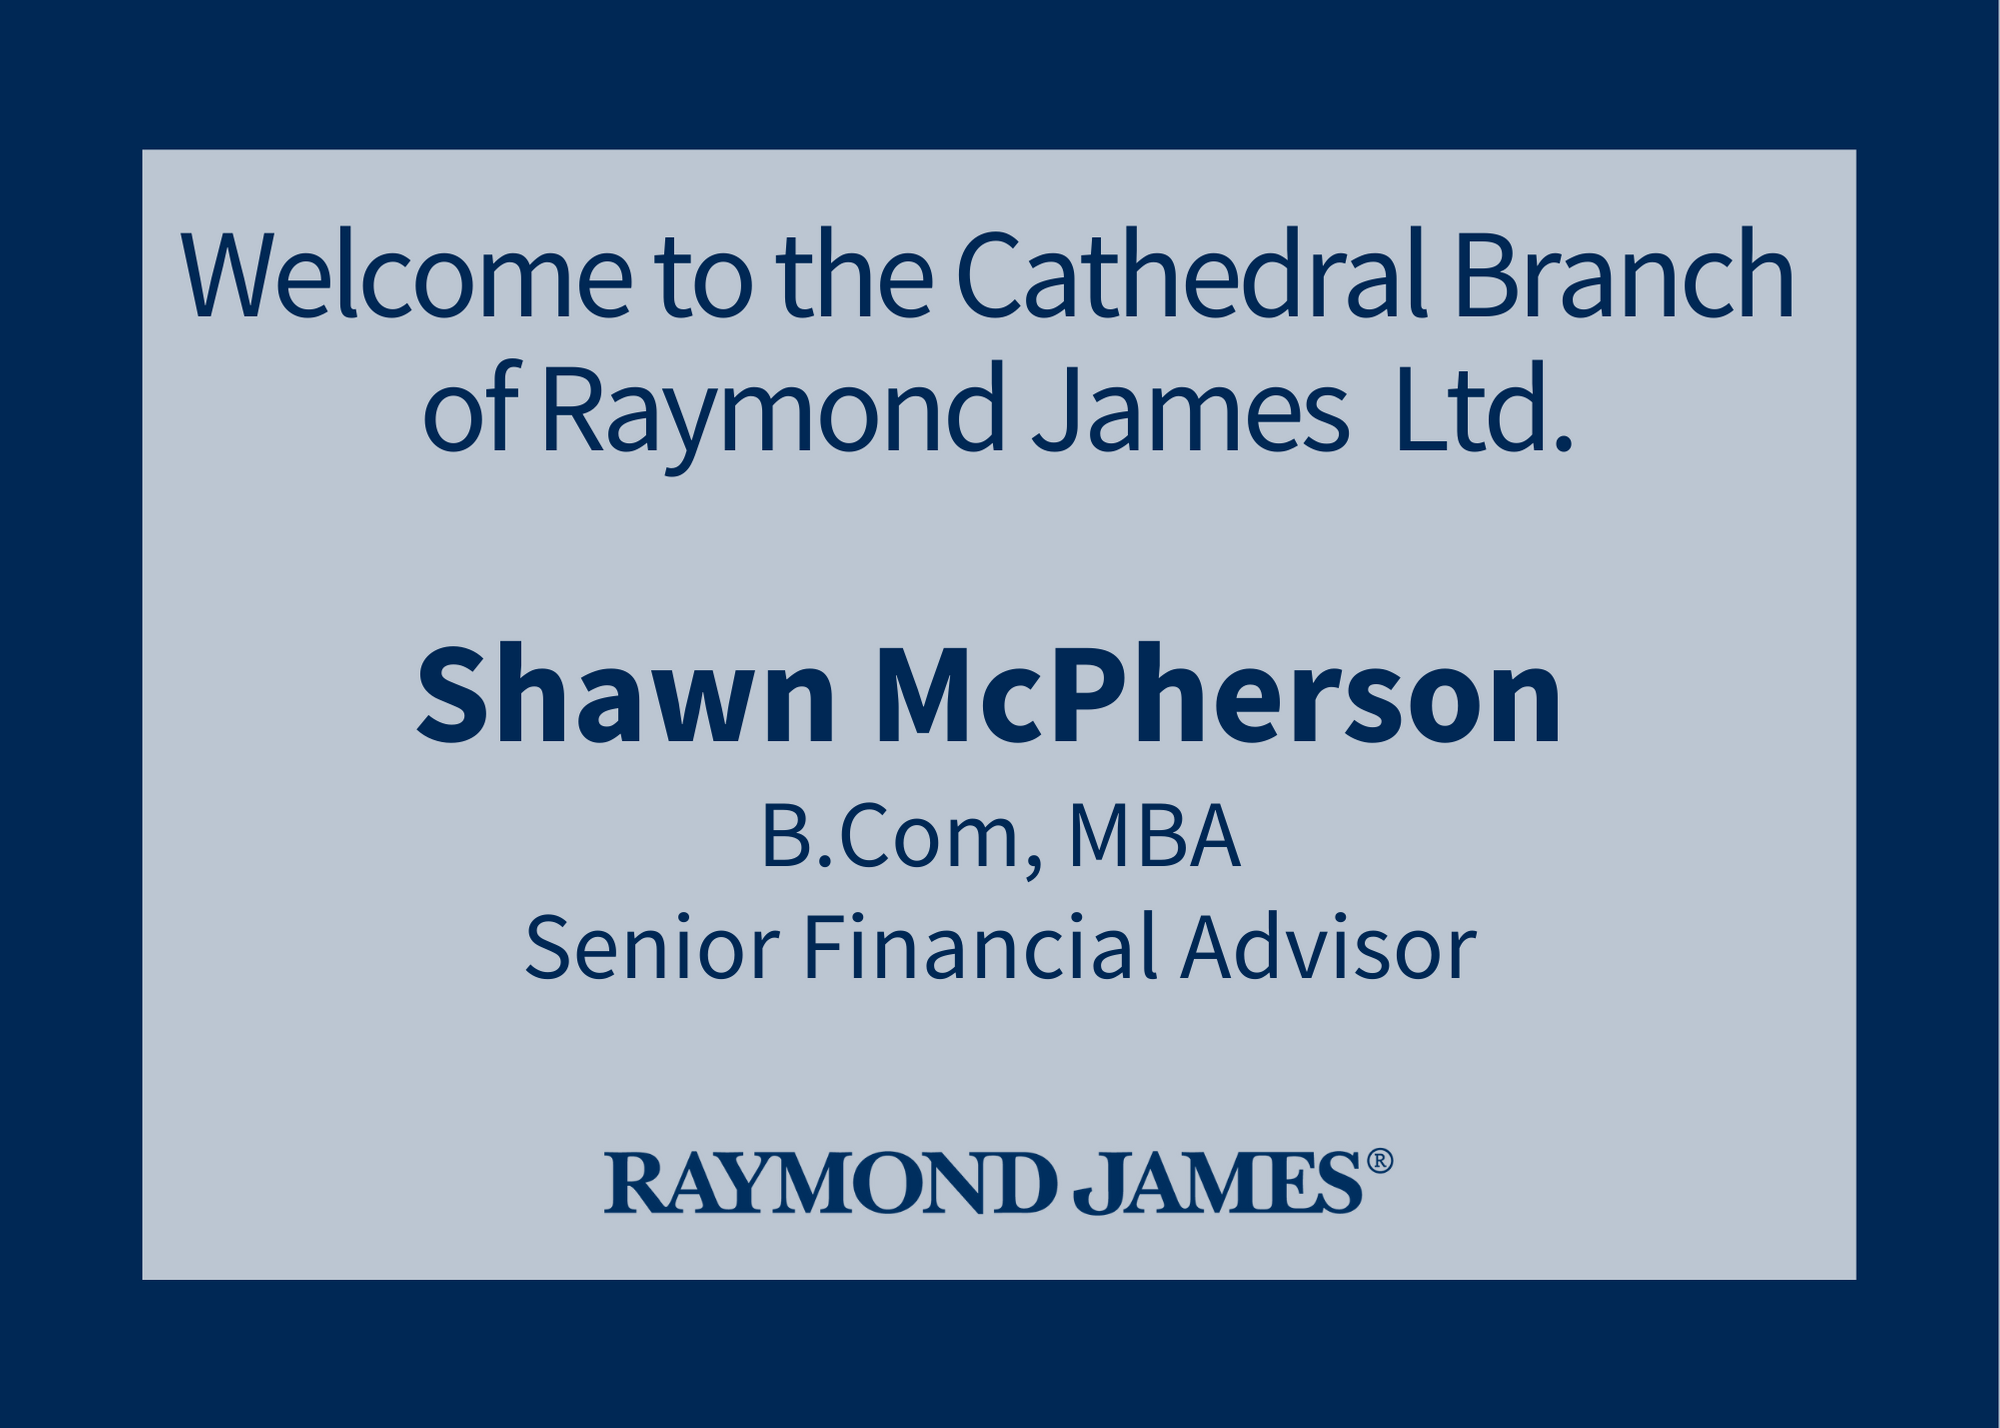 Welcome to the Cathedral Branch Shawn McPherson